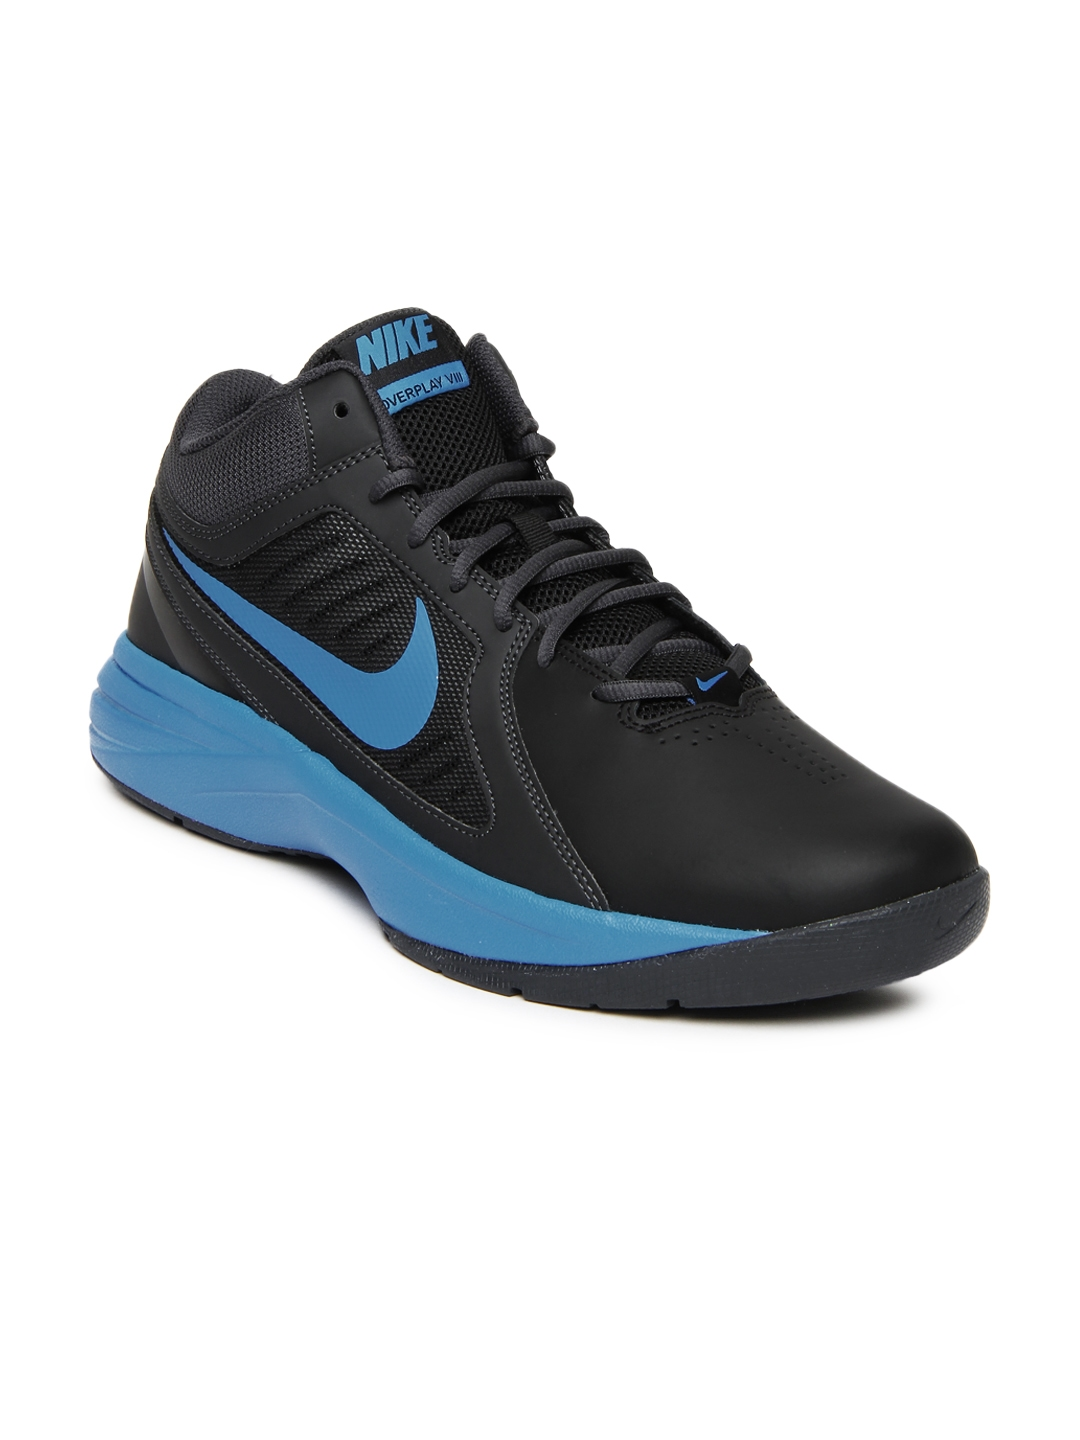 8742bc91d3f0 Buy Nike Black The Overplay VIII Basketball Sports Shoes - Sports ...